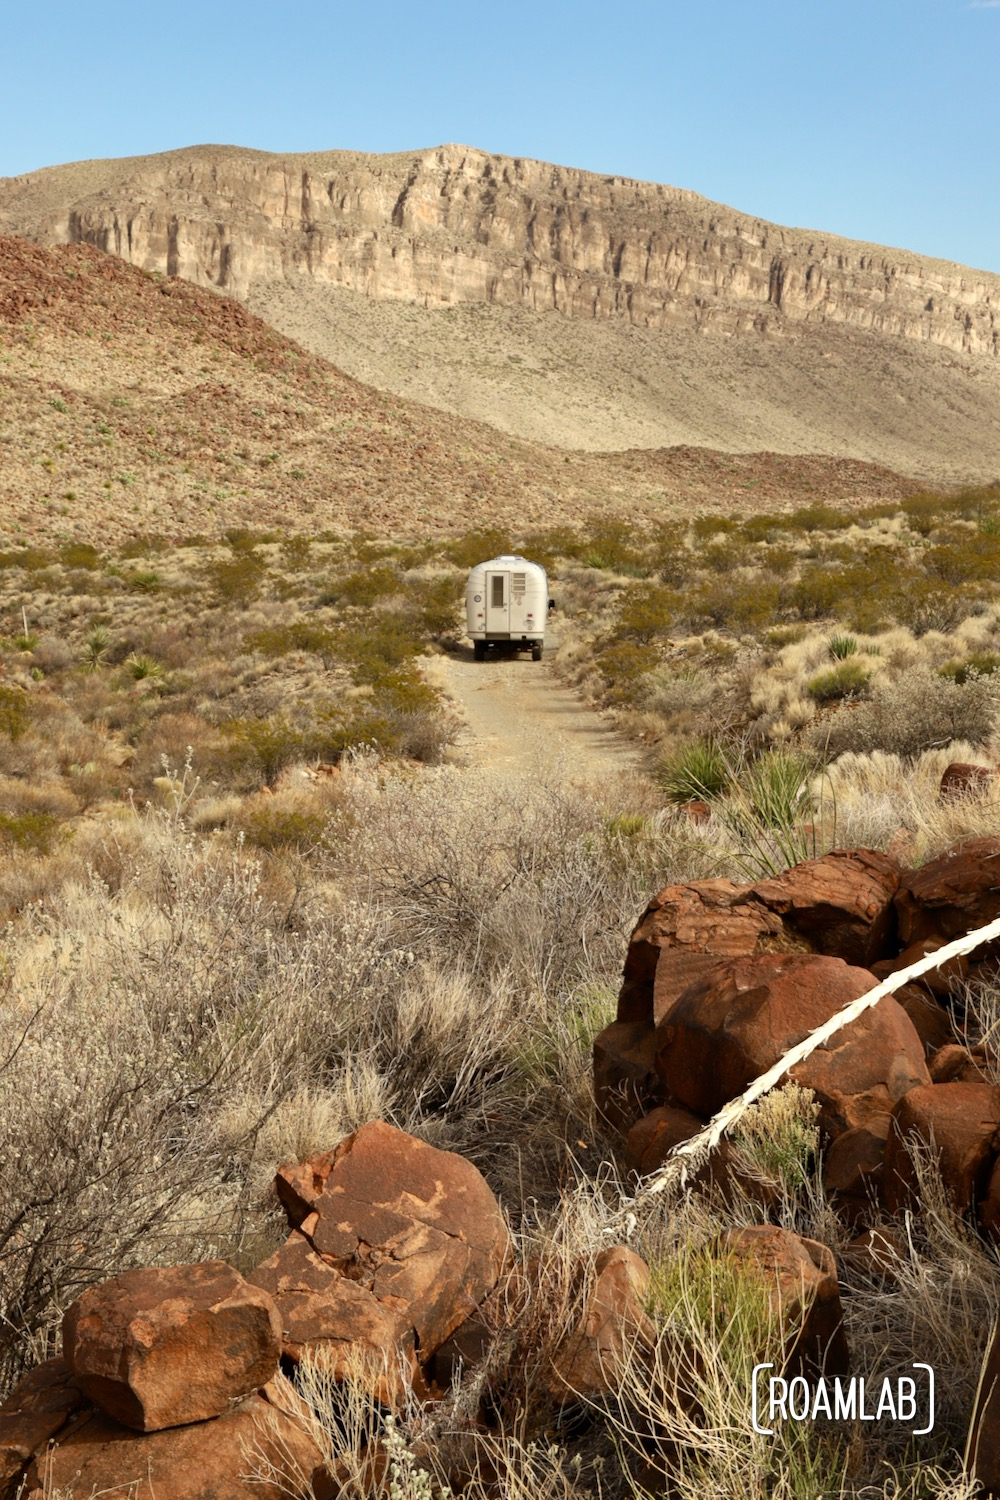 Dusty 1970 Avion C11 truck camper driving down a single land dirt road approaching the dramatic cliffs of the Alto Relex paralleling Old Ore Road in Big Bend National Park, Texas.